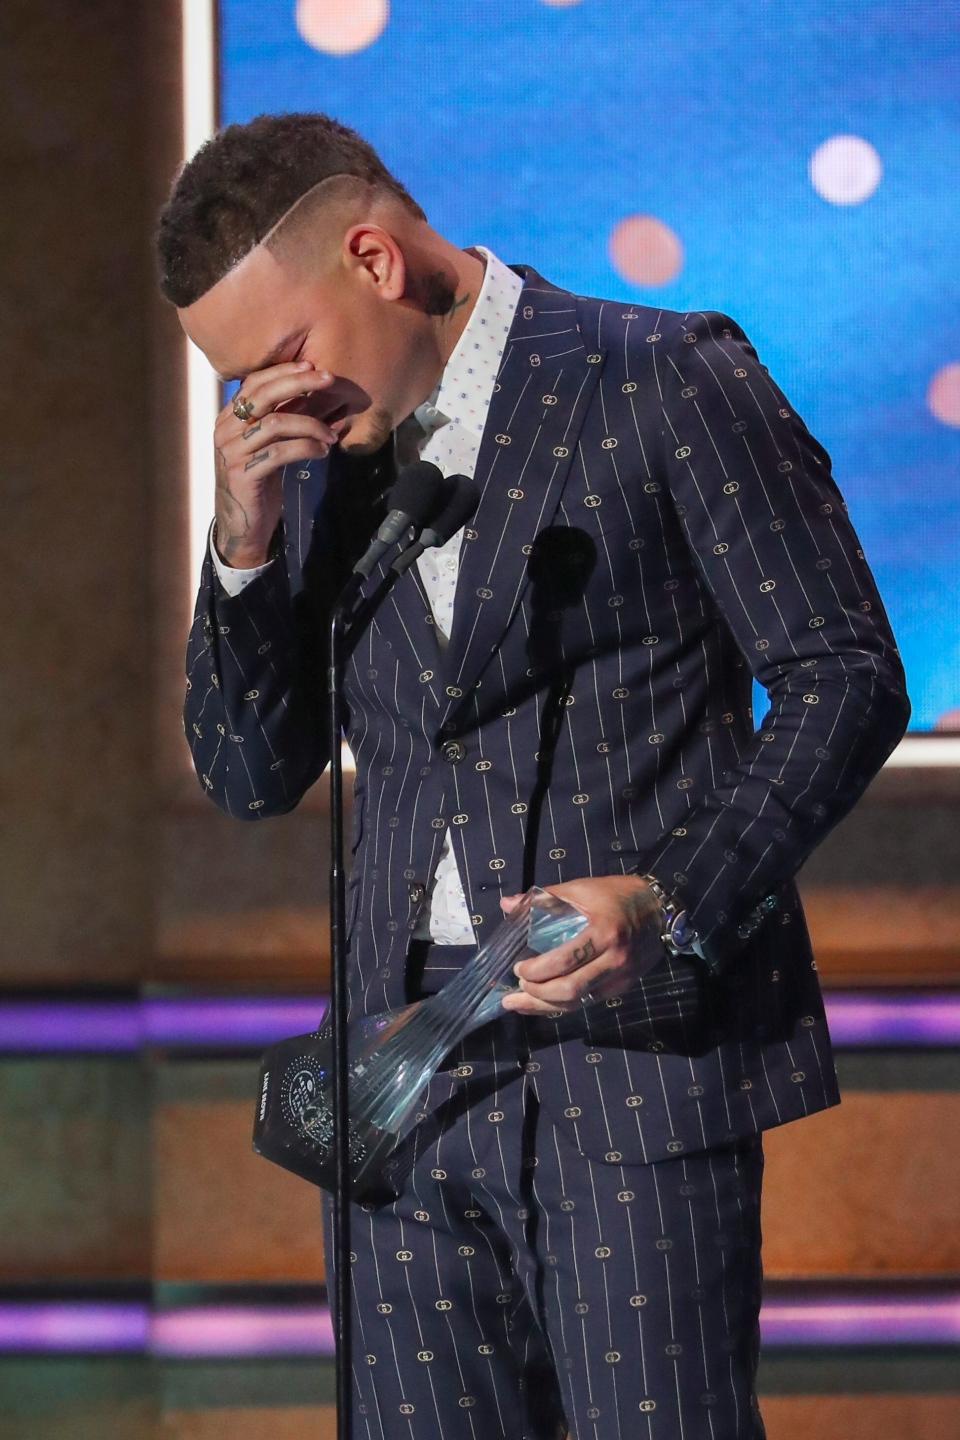 Kane Brown receives Artist of the Year Award at 2019 CMT Artists of the Year at Schermerhorn Symphony Center on Wednesday, Oct. 16, 2019, in Nashville, Tenn. (Photo by Al Wagner/Invision/AP)